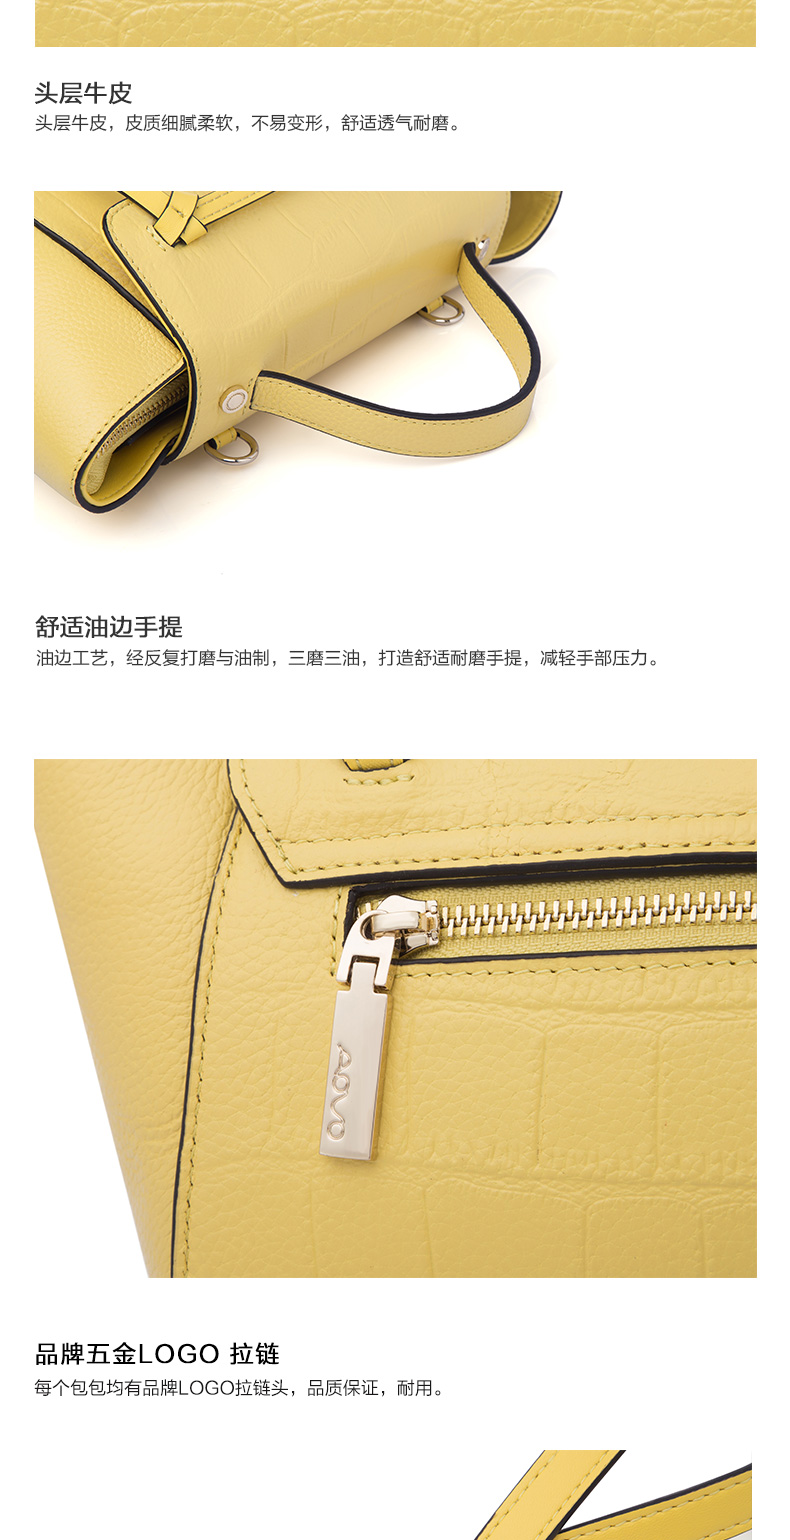 Aovo Luxury Alligator Pattern Genuine Leather Women Handbag Fashion Radiant Backpack Wings Bag Small Catfish Beltbag Casual Yellow Shoulder Bags Usd 7690 Piece